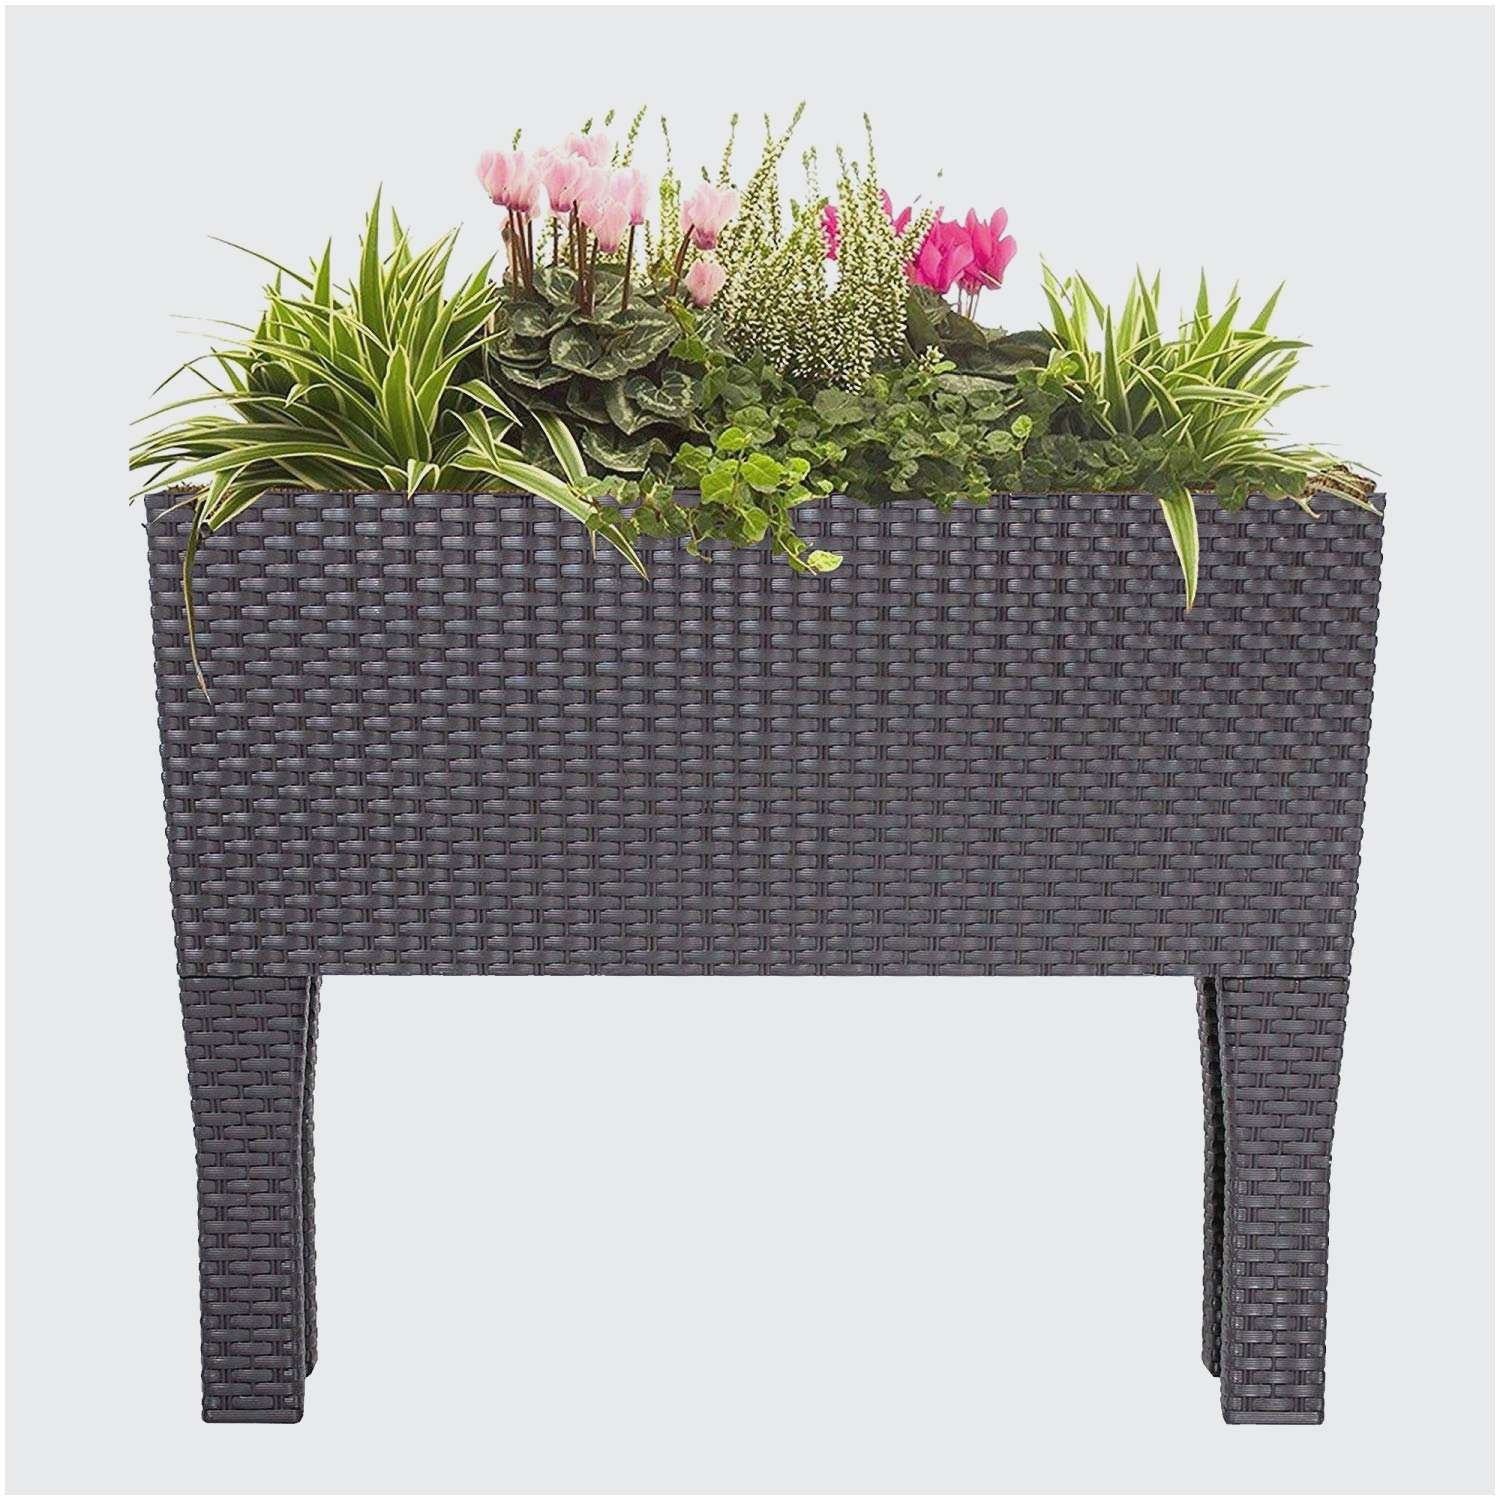 Large Wicker Floor Vase Of 25 sophistication Large Decorative Garden Planters with Regard to 25 sophistication Large Decorative Garden Planters